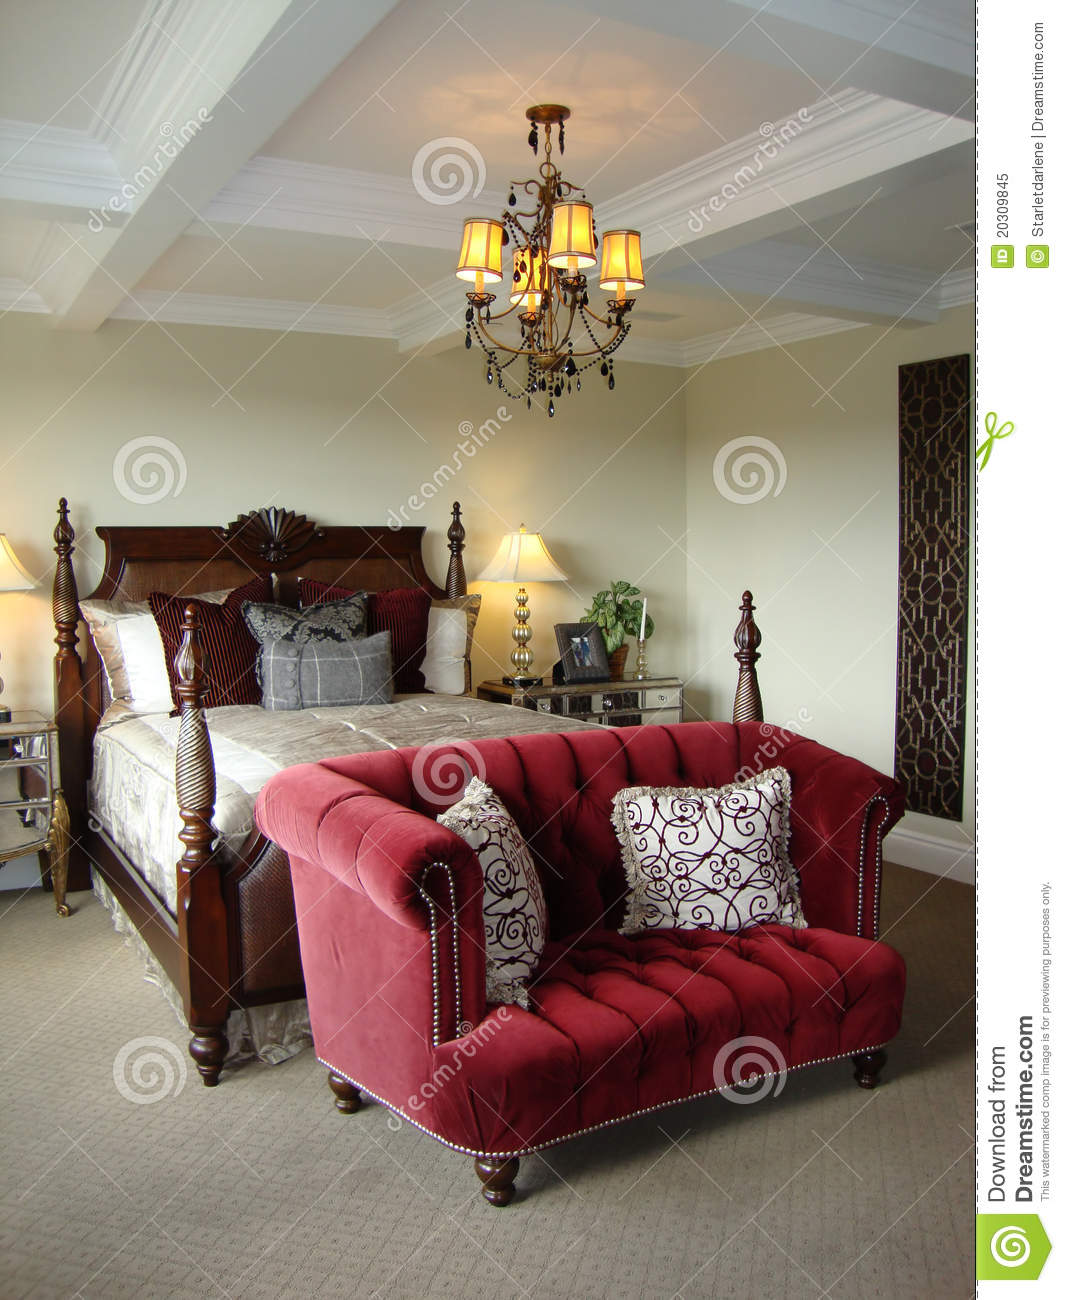 Beautiful master bedroom suite royalty free stock photo image 20309845 - Pictures of beautiful bedroom suite ...